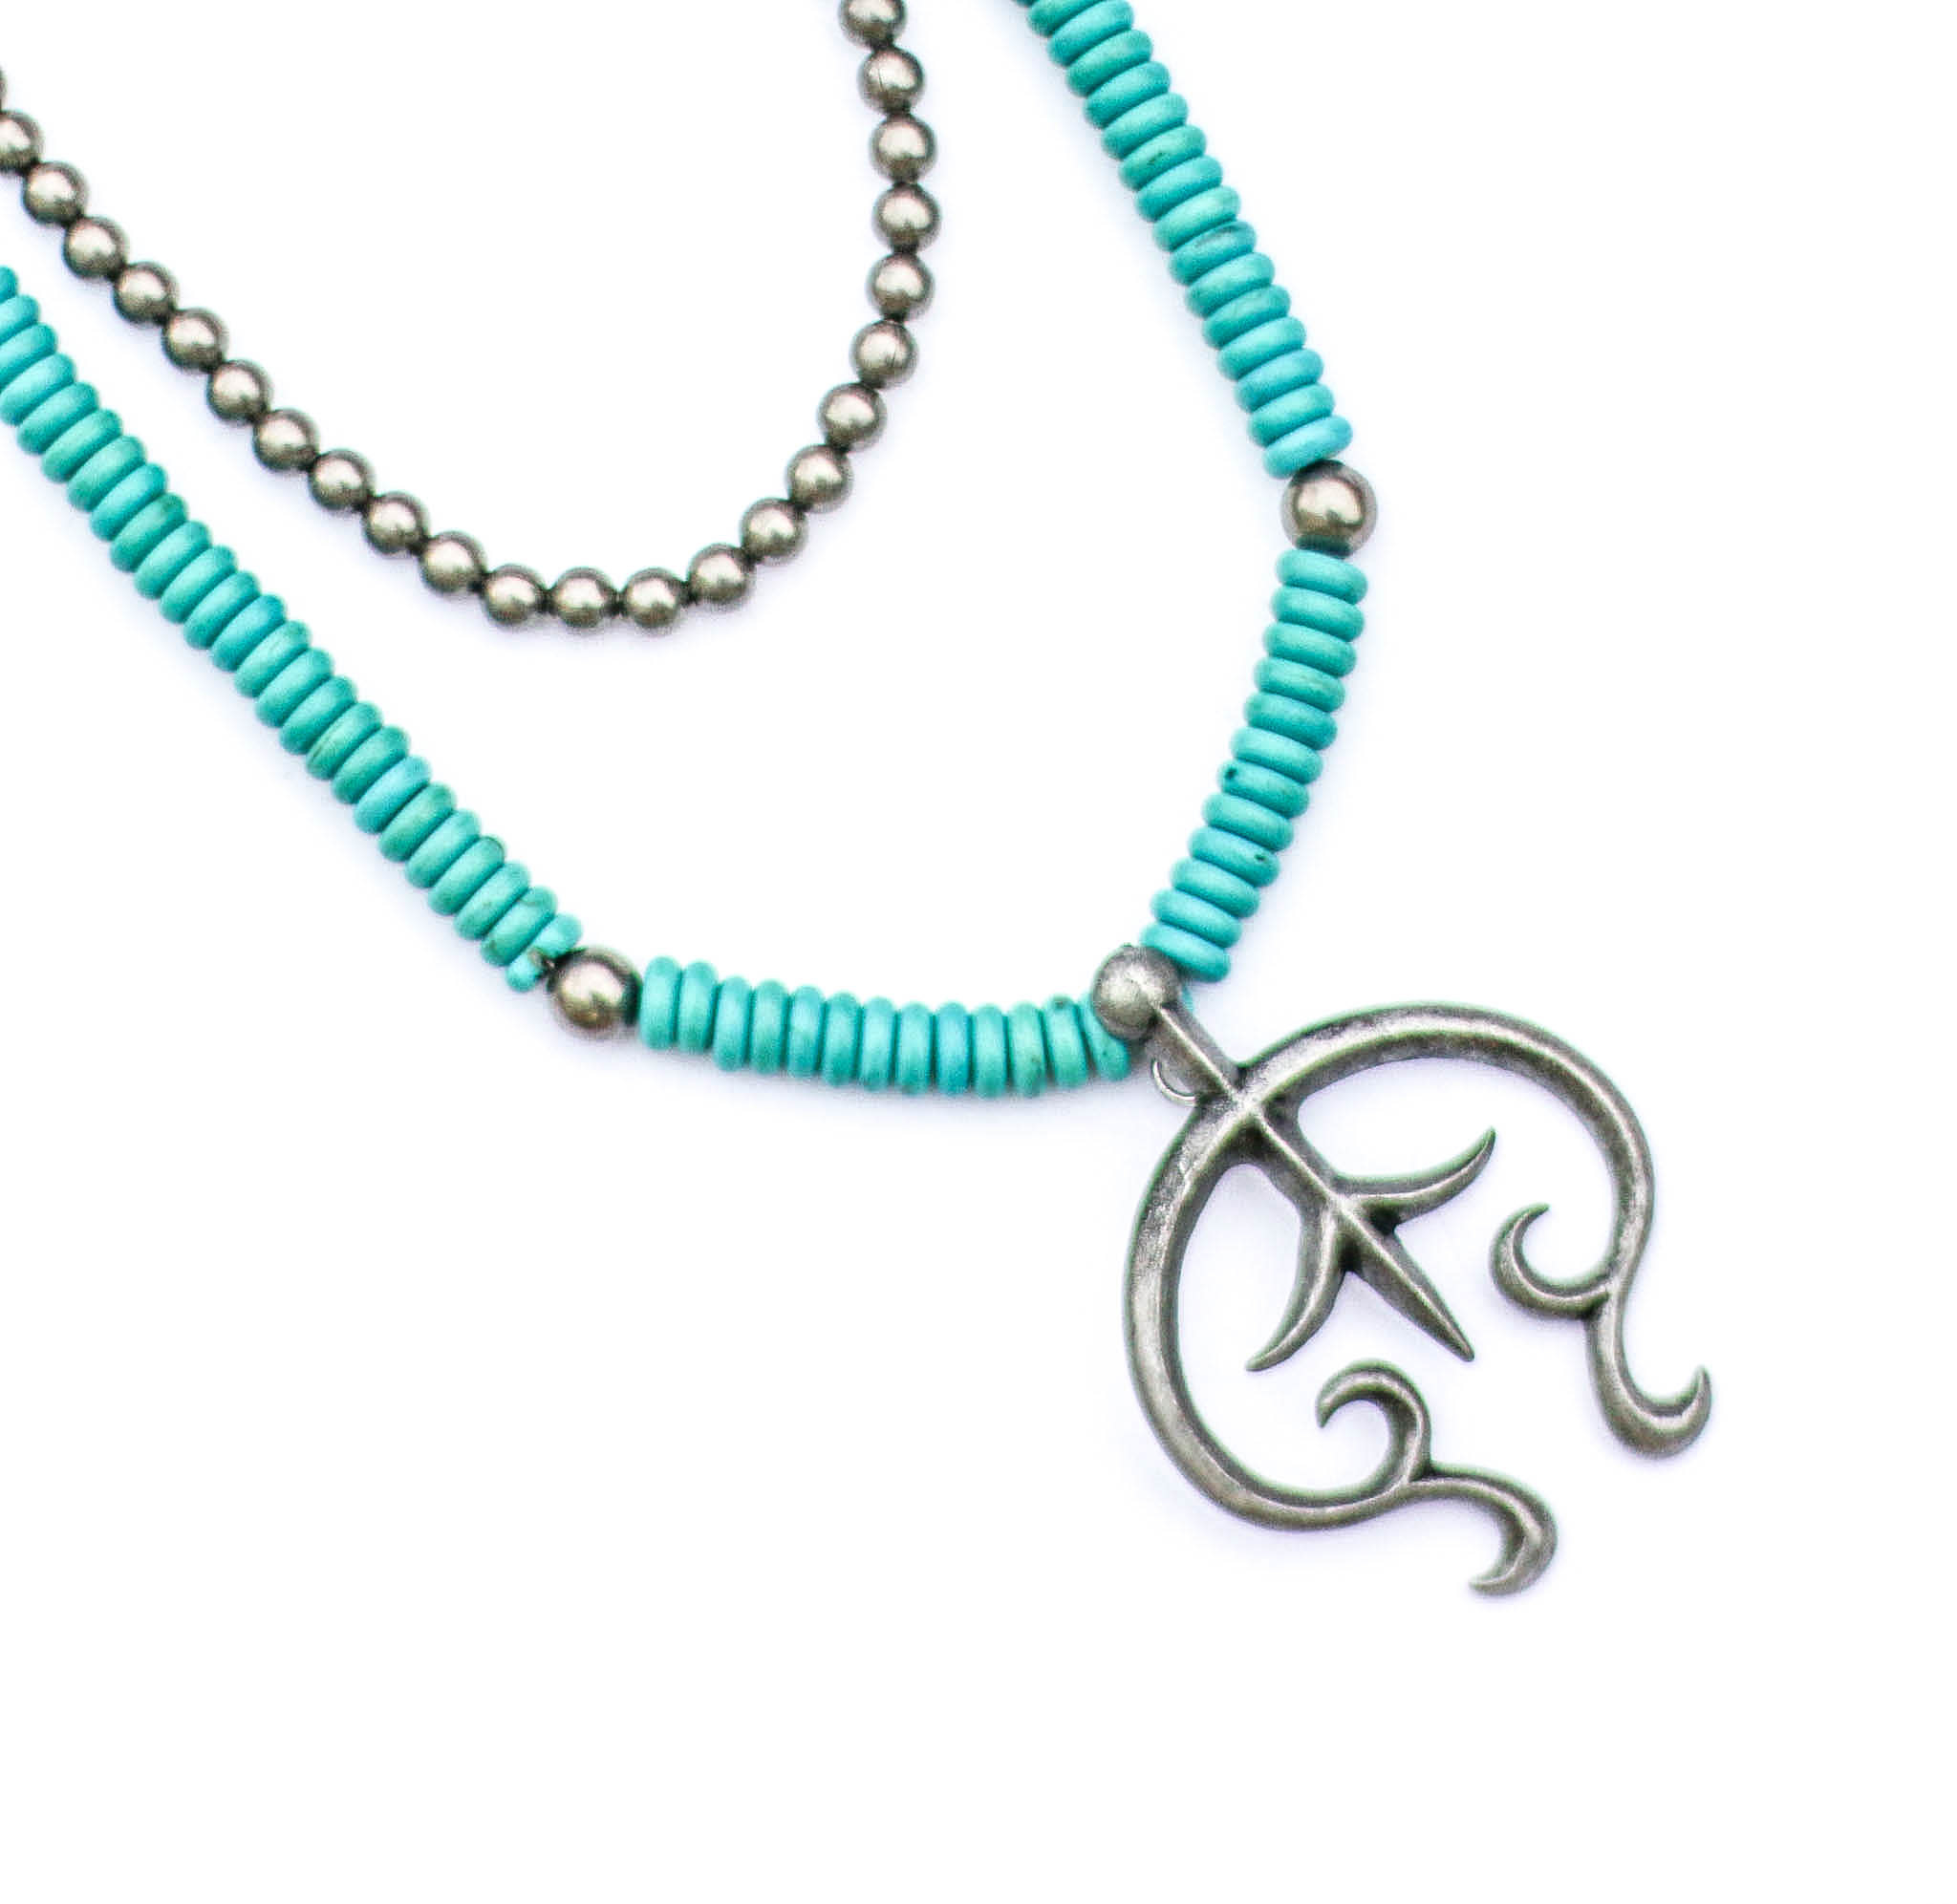 Punchy's 2 Strand Turquoise & Pewter Bead Necklace with Burnished Silver Naja Pendant